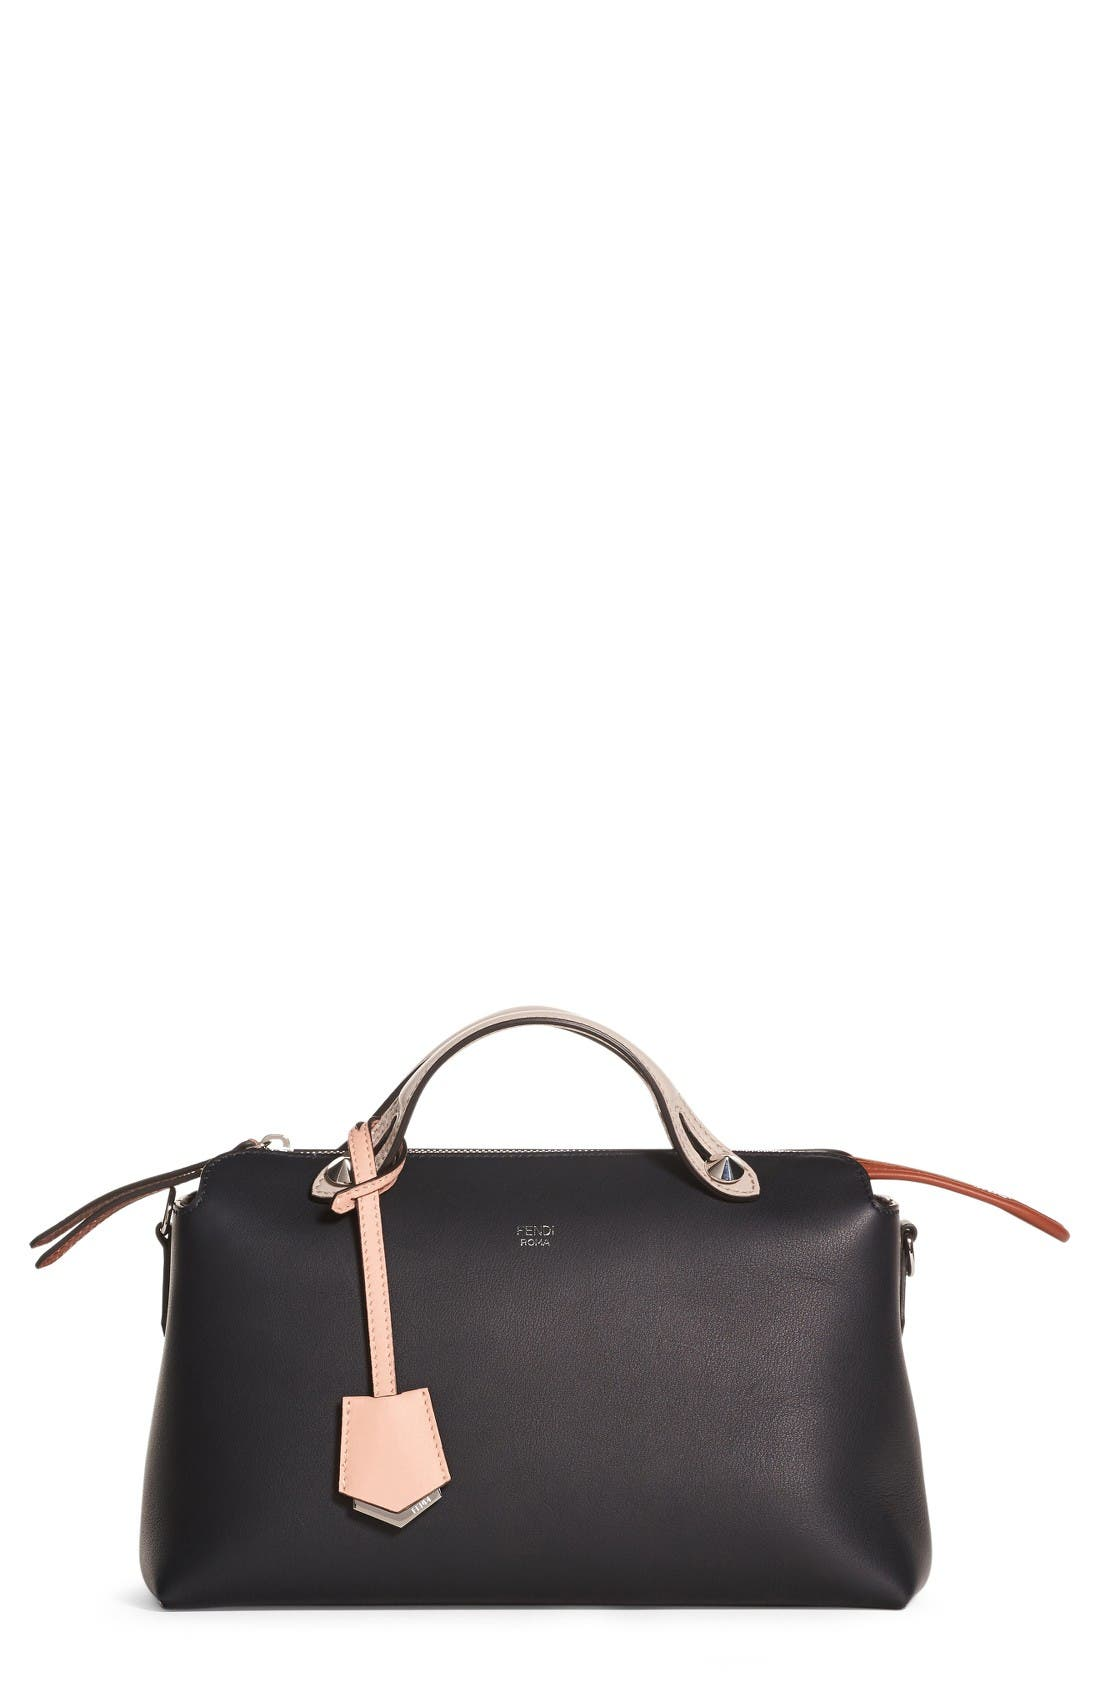 Fendi 'Medium By the Way' Colorblock Leather Shoulder Bag